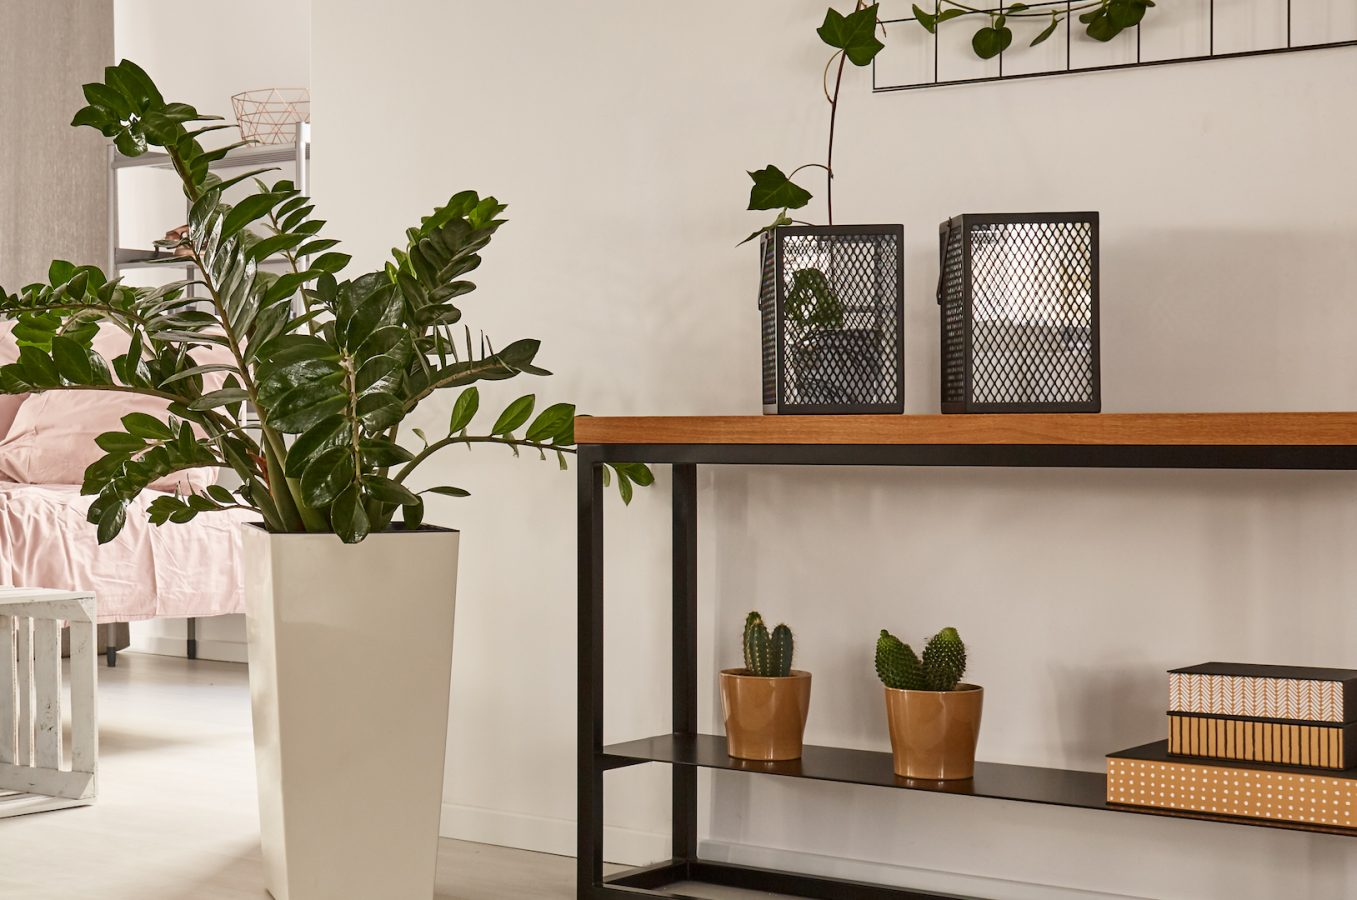 Cozy studio apartment with big bed, wooden furniture and big plant